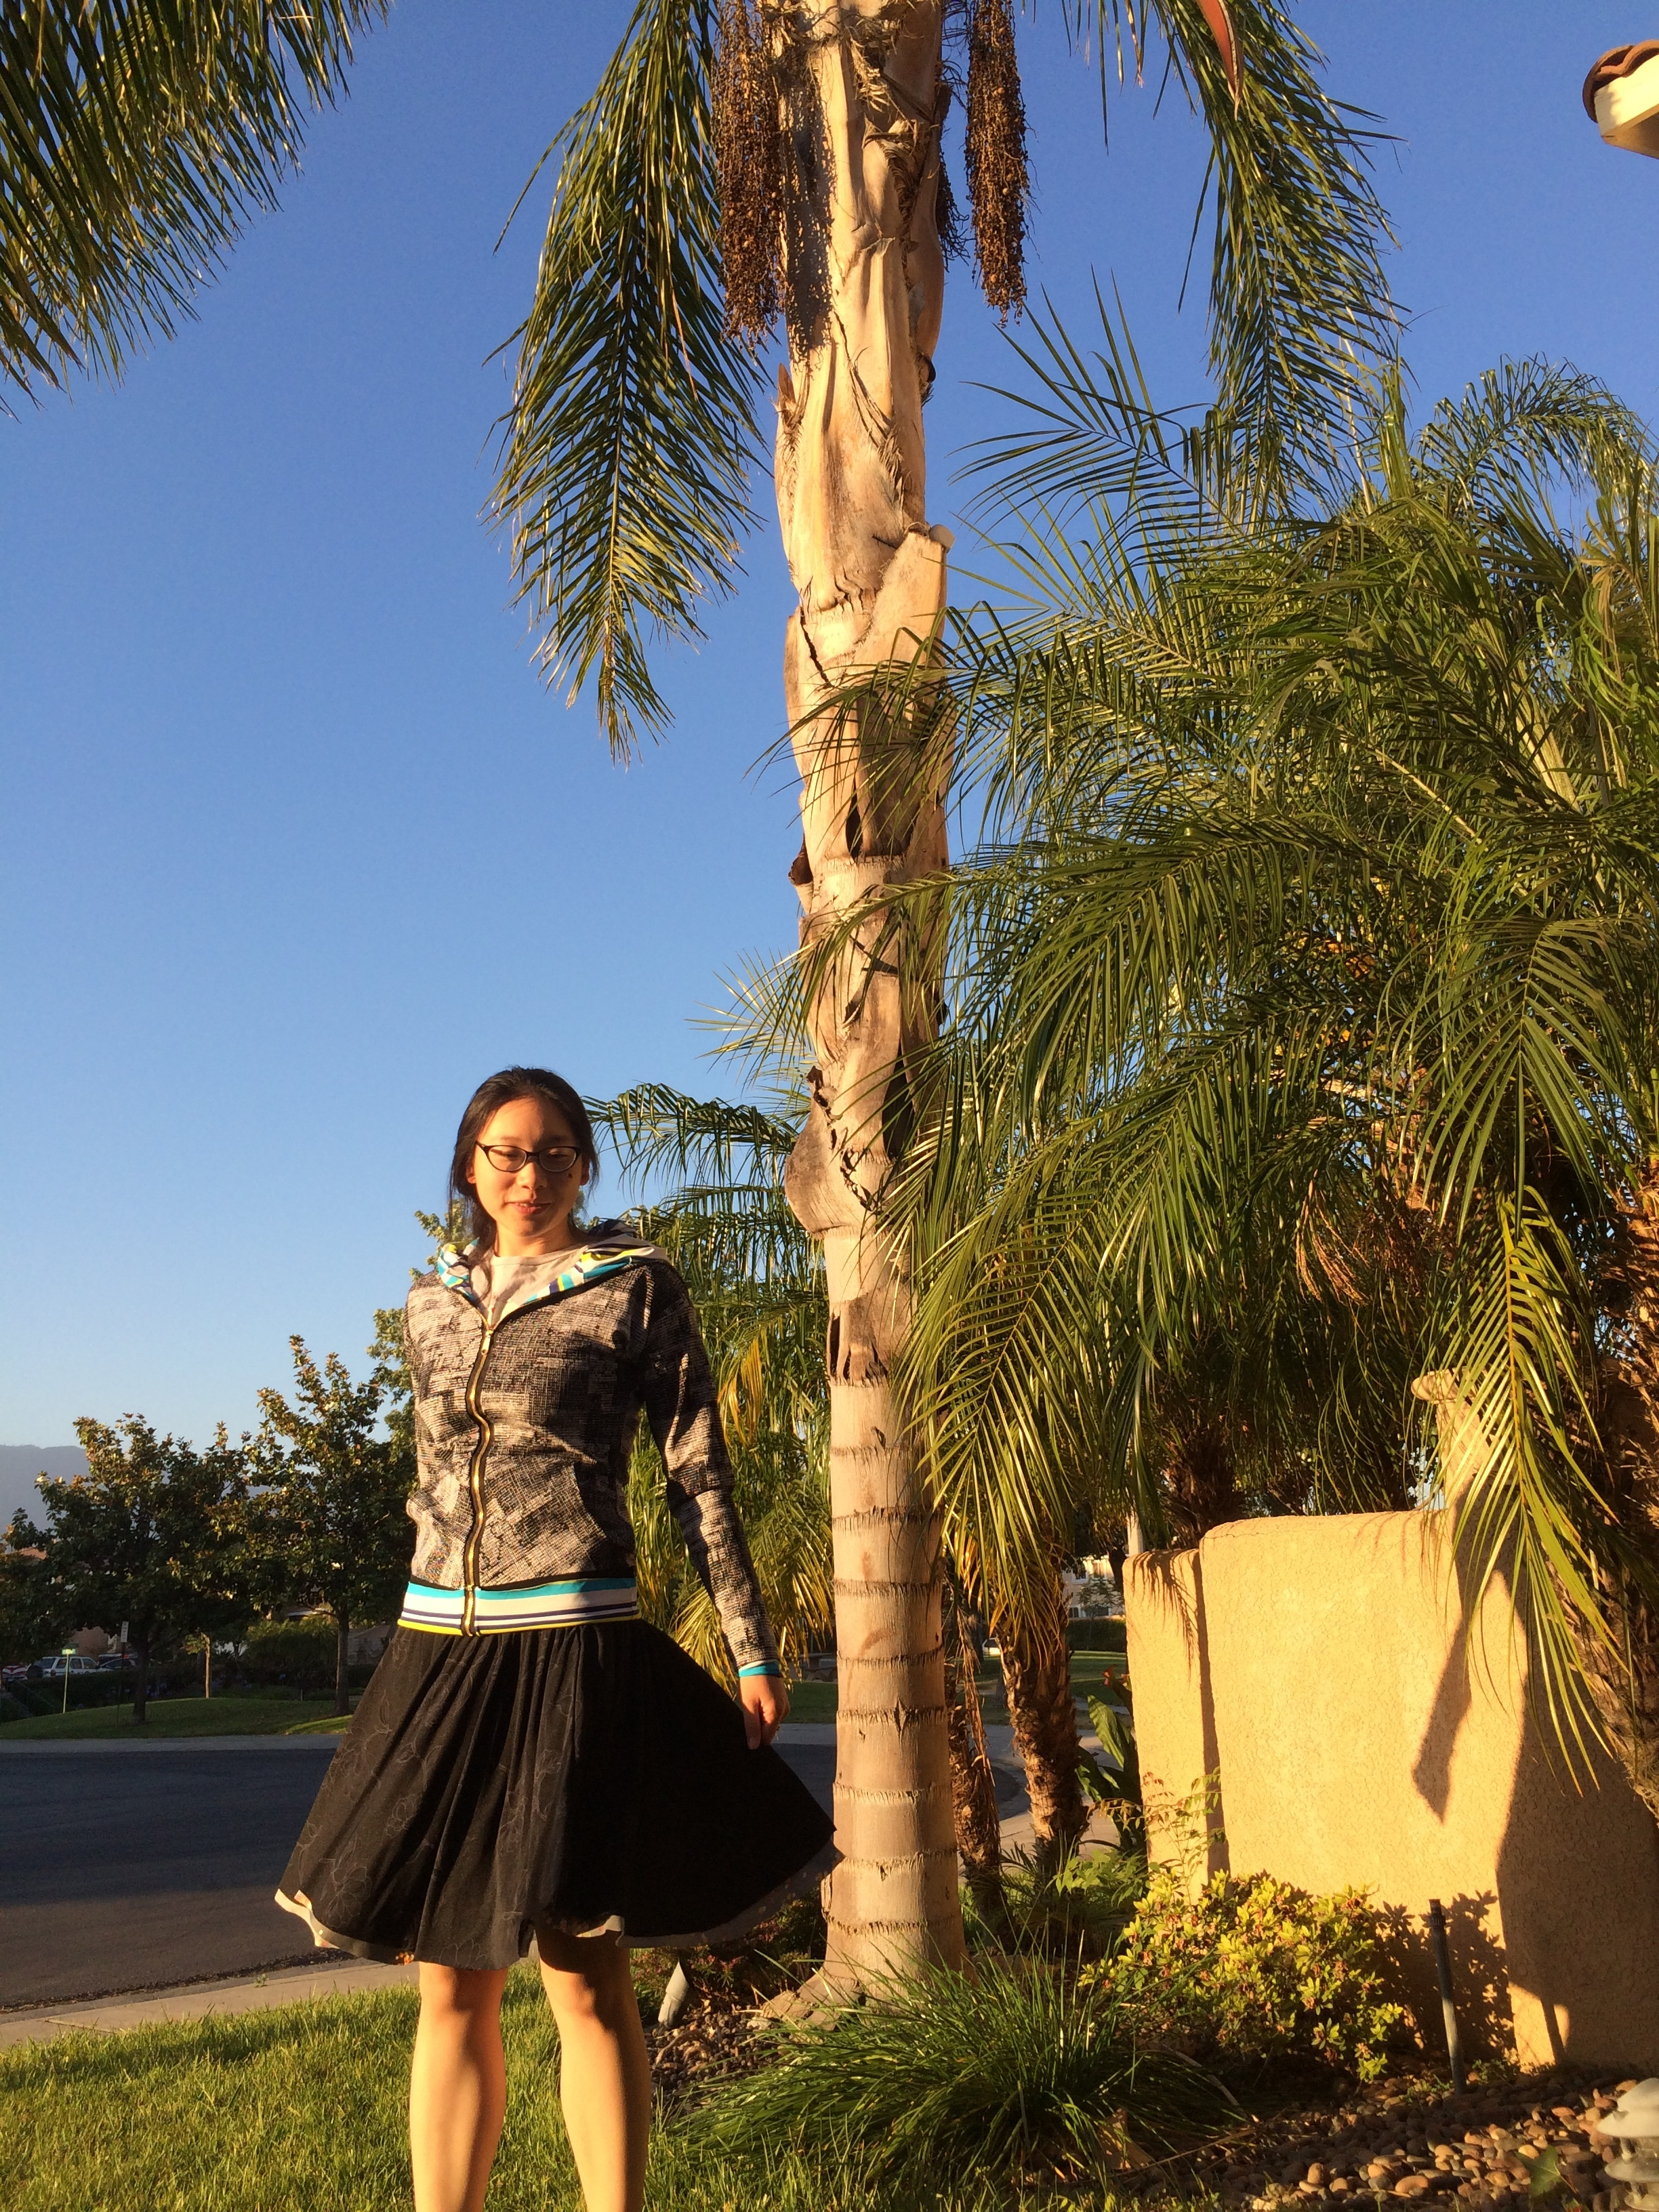 Twirling with my skirt at sunset